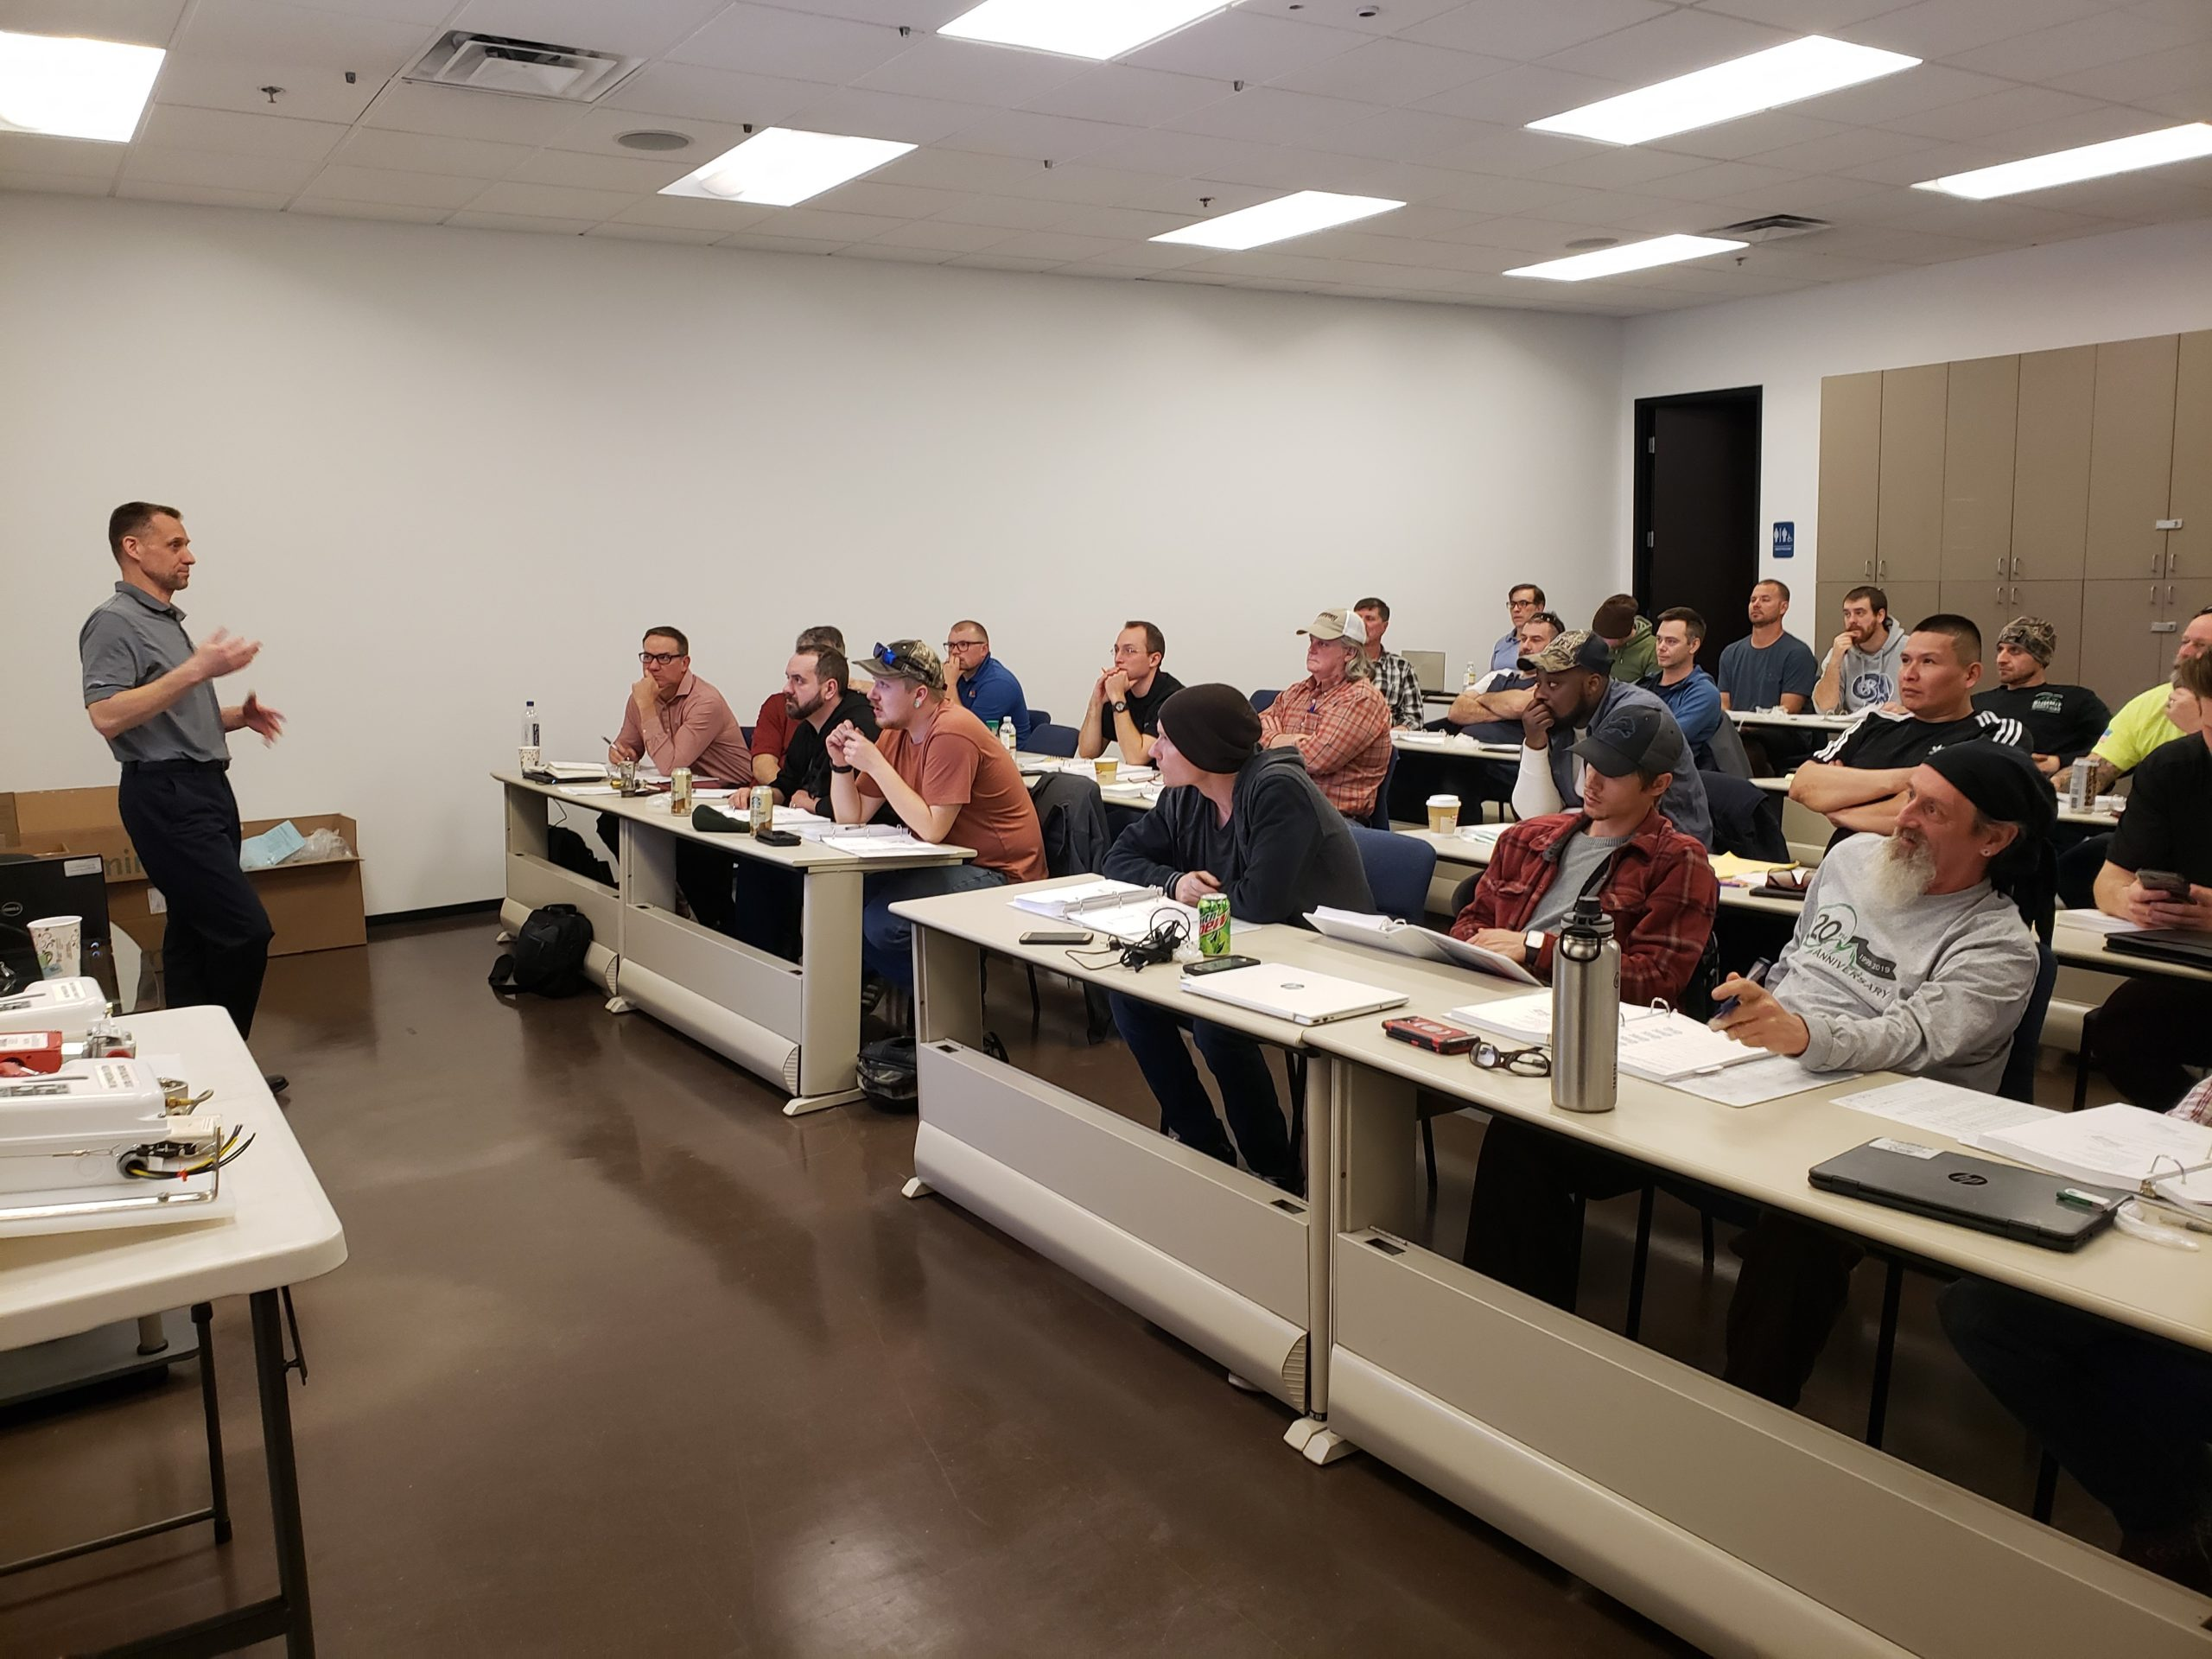 31 attendees at a training seminar instructed by Kidde